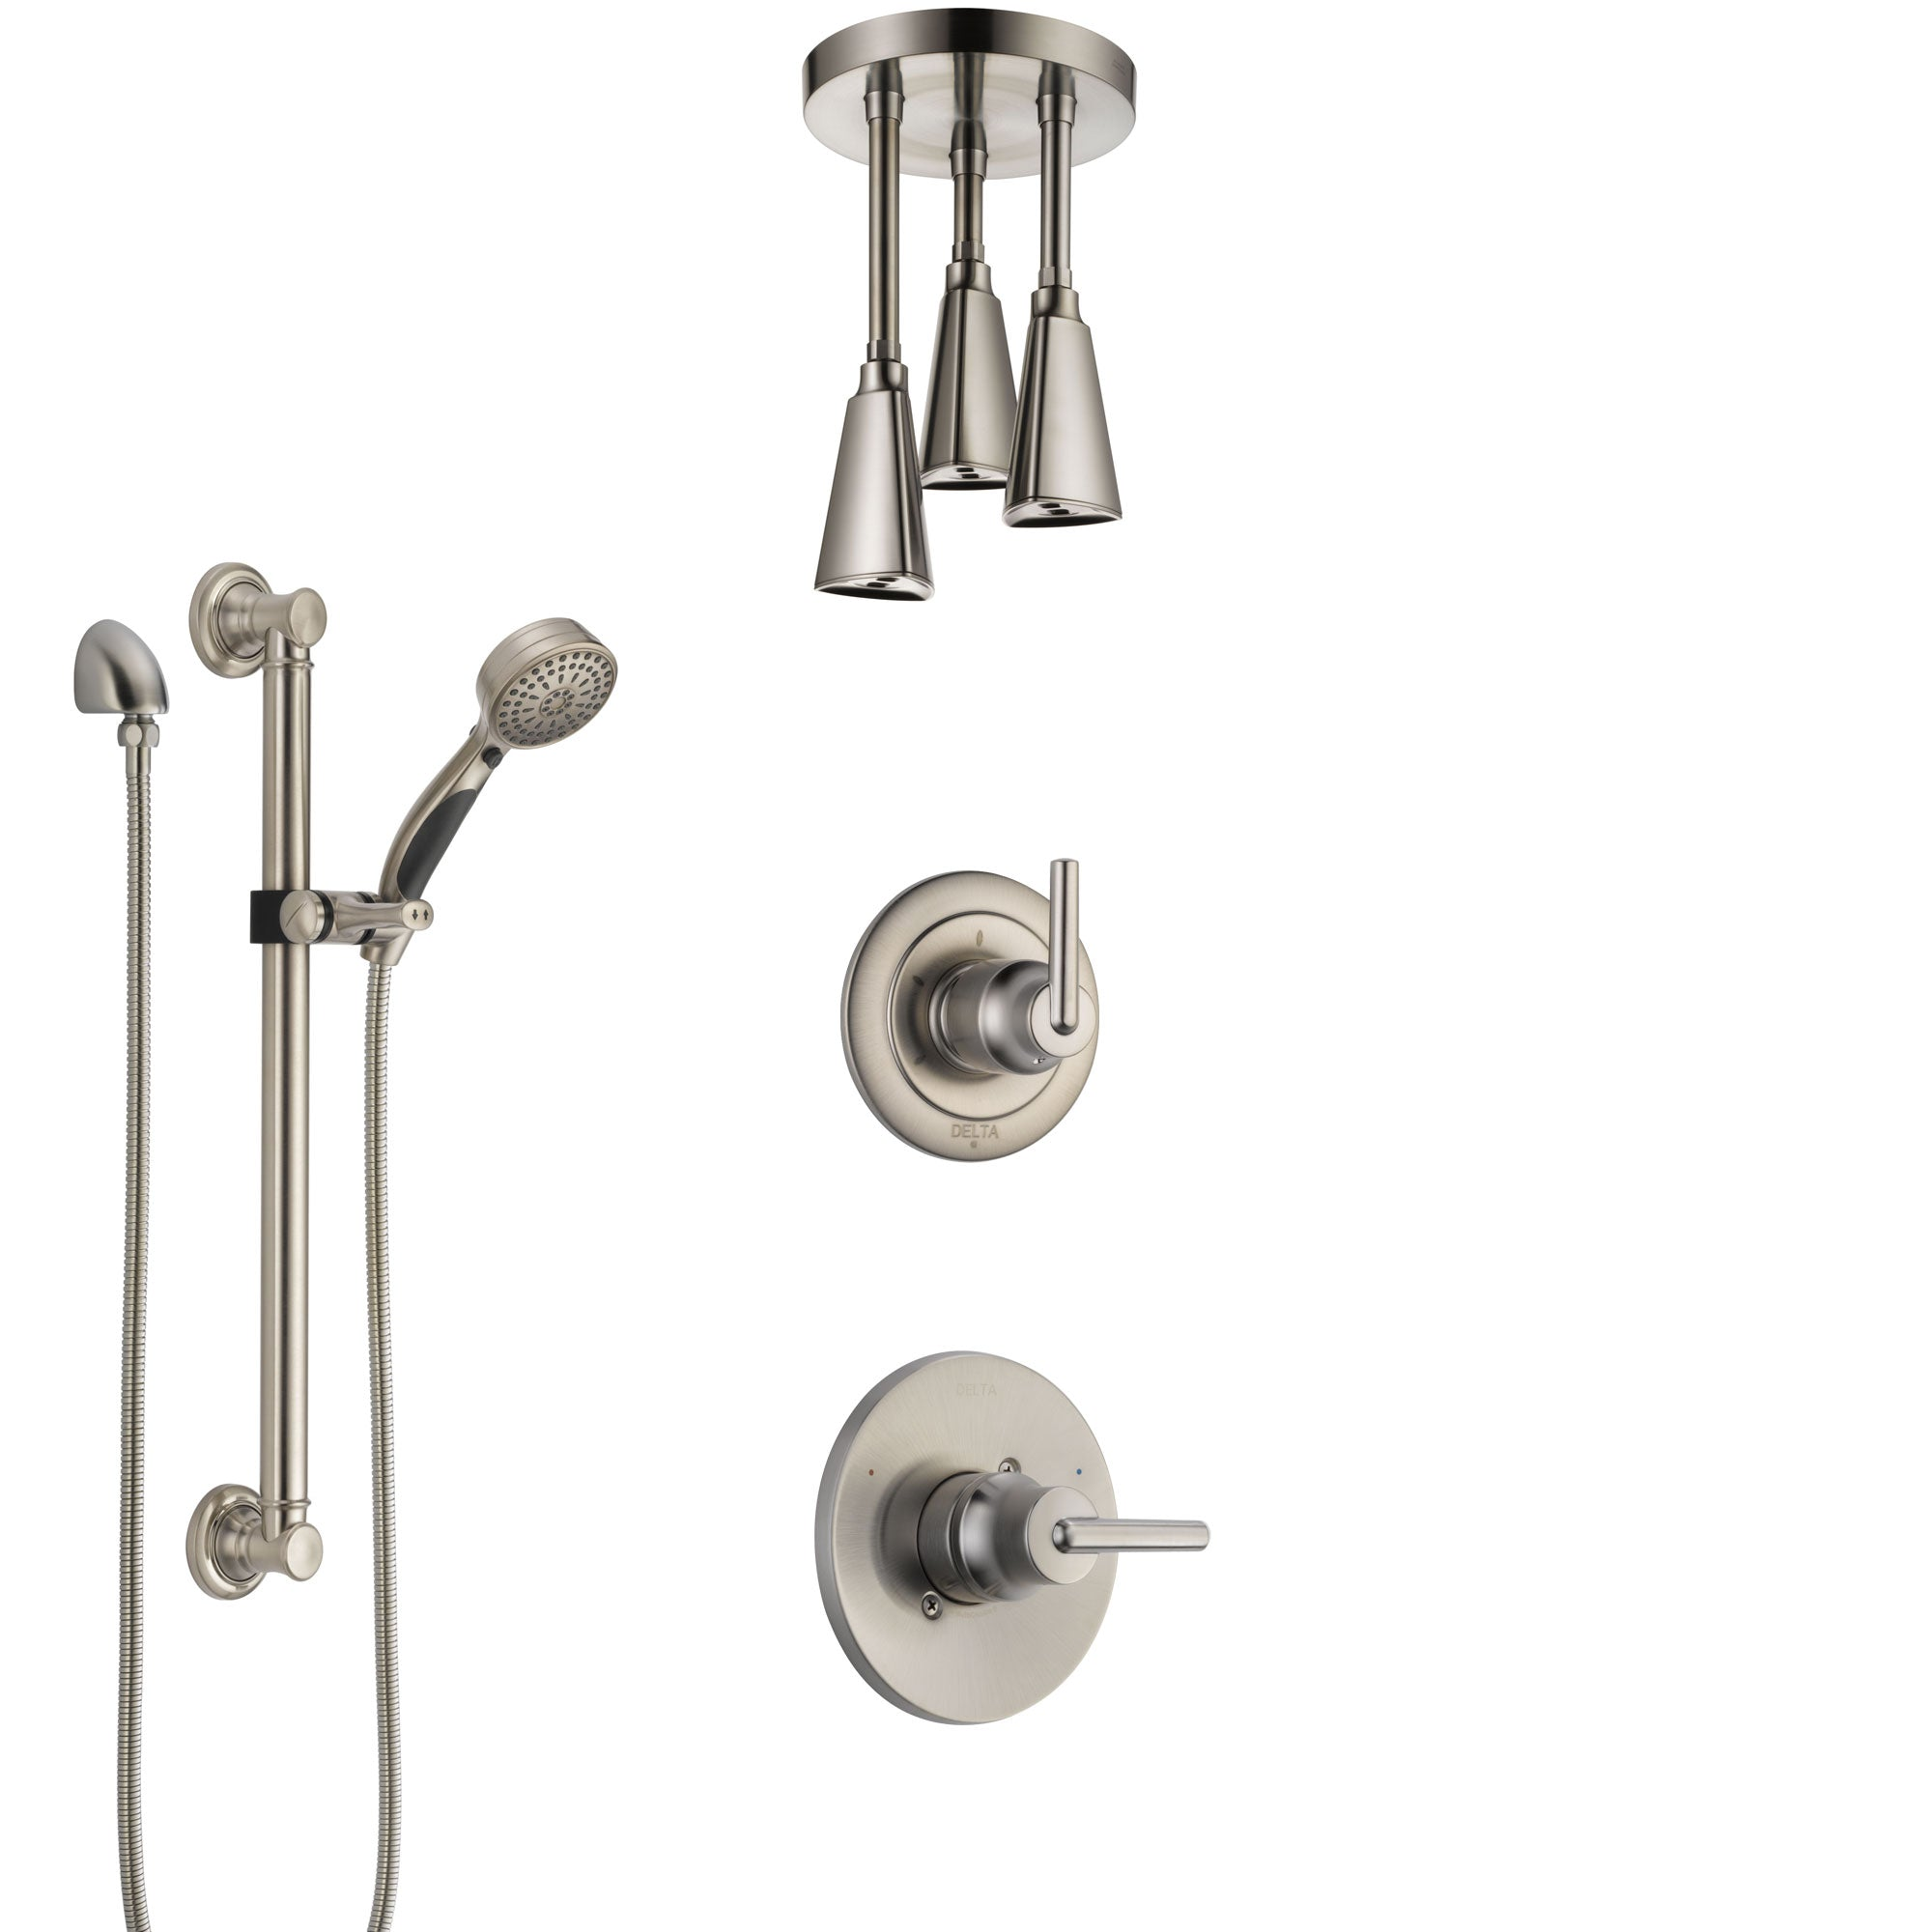 Delta Trinsic Stainless Steel Finish Shower System with Control Handle, Diverter, Ceiling Mount Showerhead, and Hand Shower with Grab Bar SS1459SS6